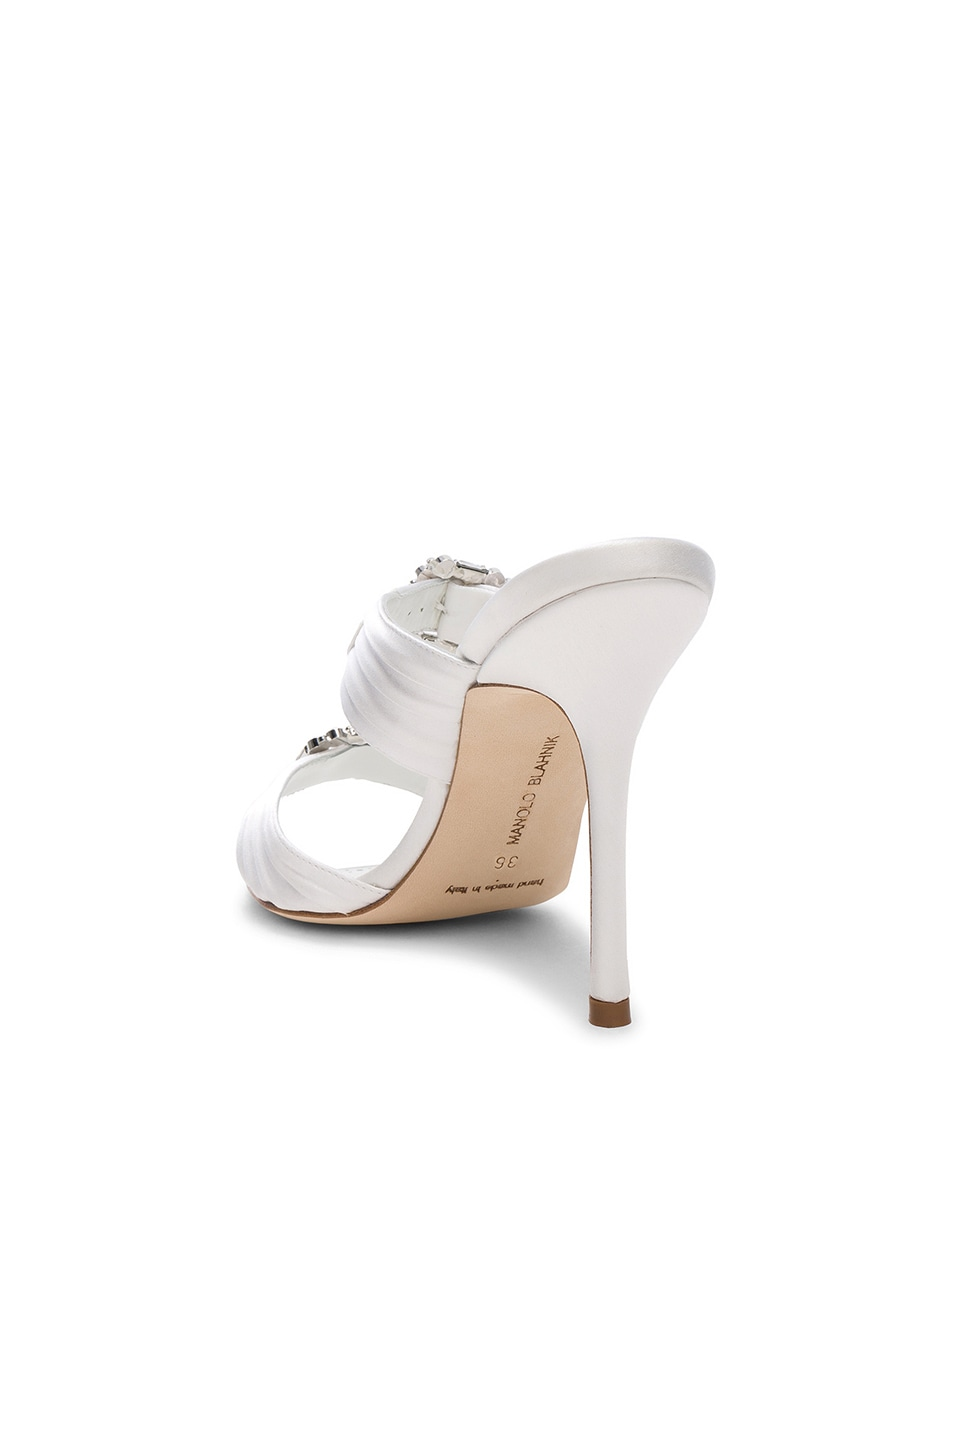 Image 3 of Manolo Blahnik Satin Pow 105 Sandals in White